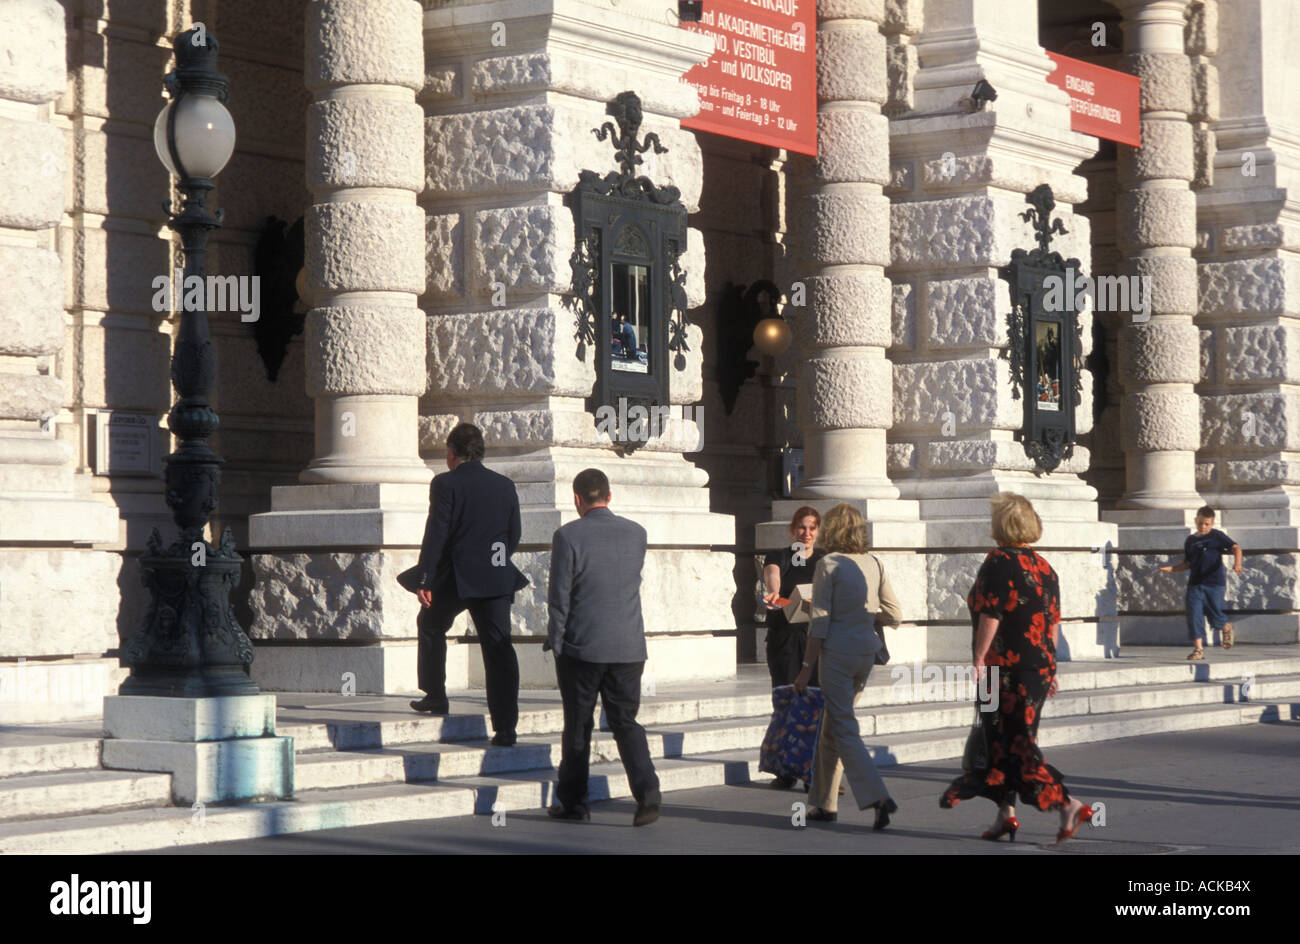 Theatre goers going into Burgtheater theatre in Vienna Austria - Stock Image